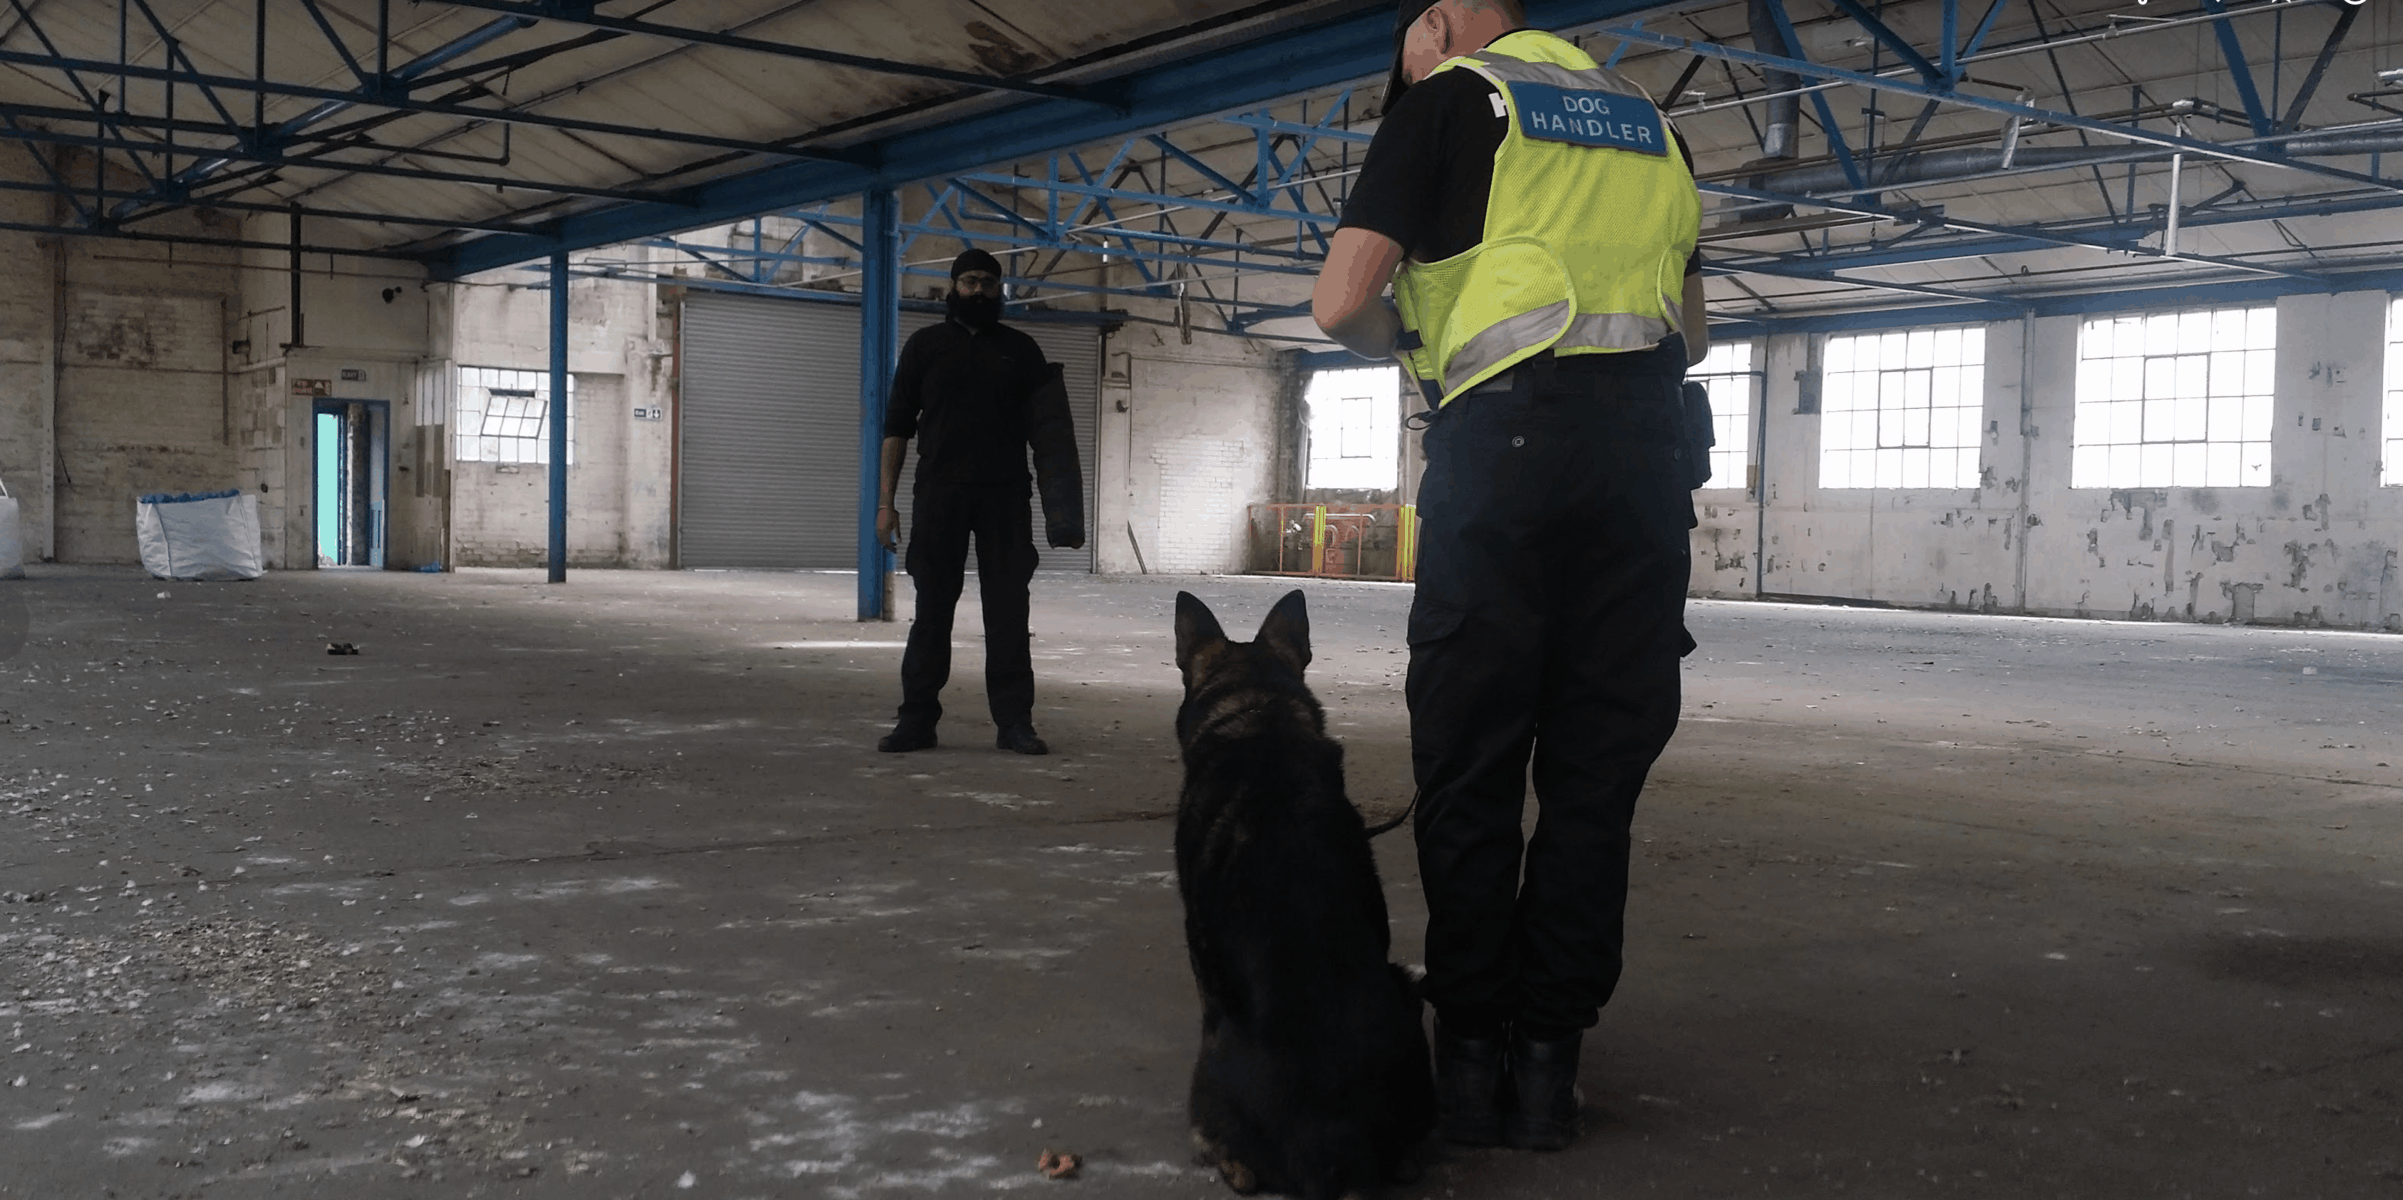 Security dogs derby